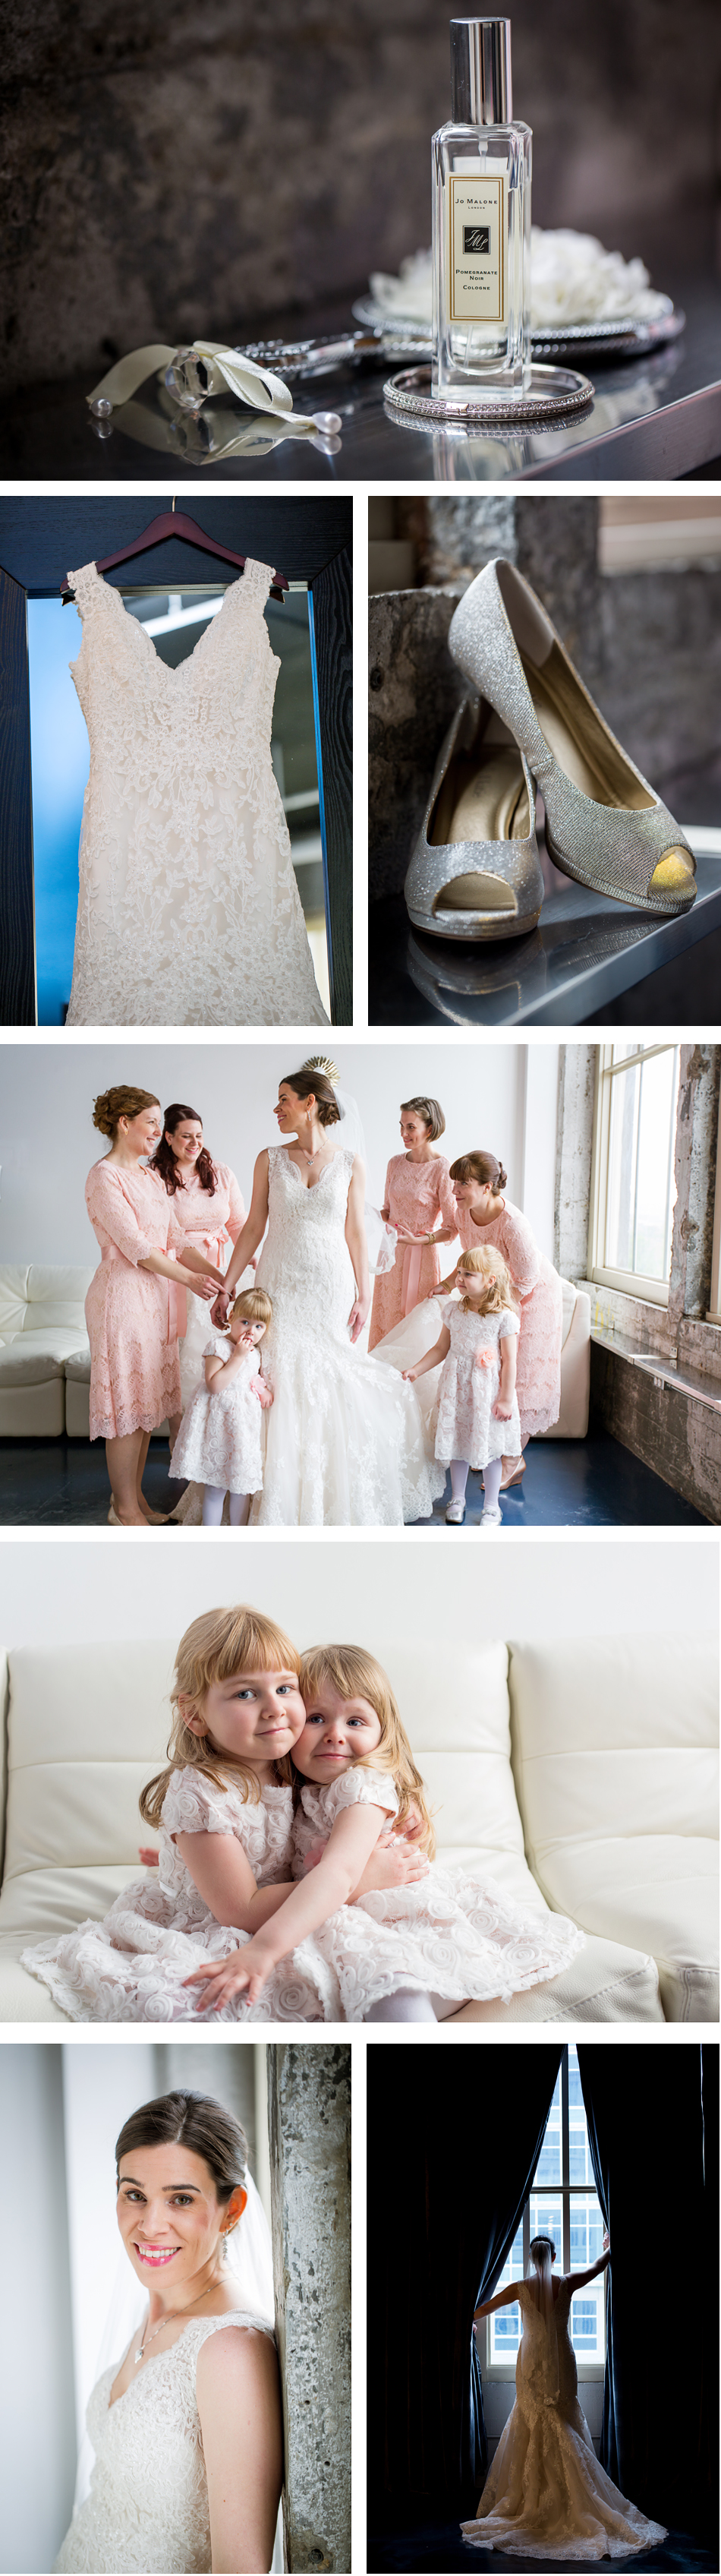 The Foundry at Glassworks Wedding eMotion image